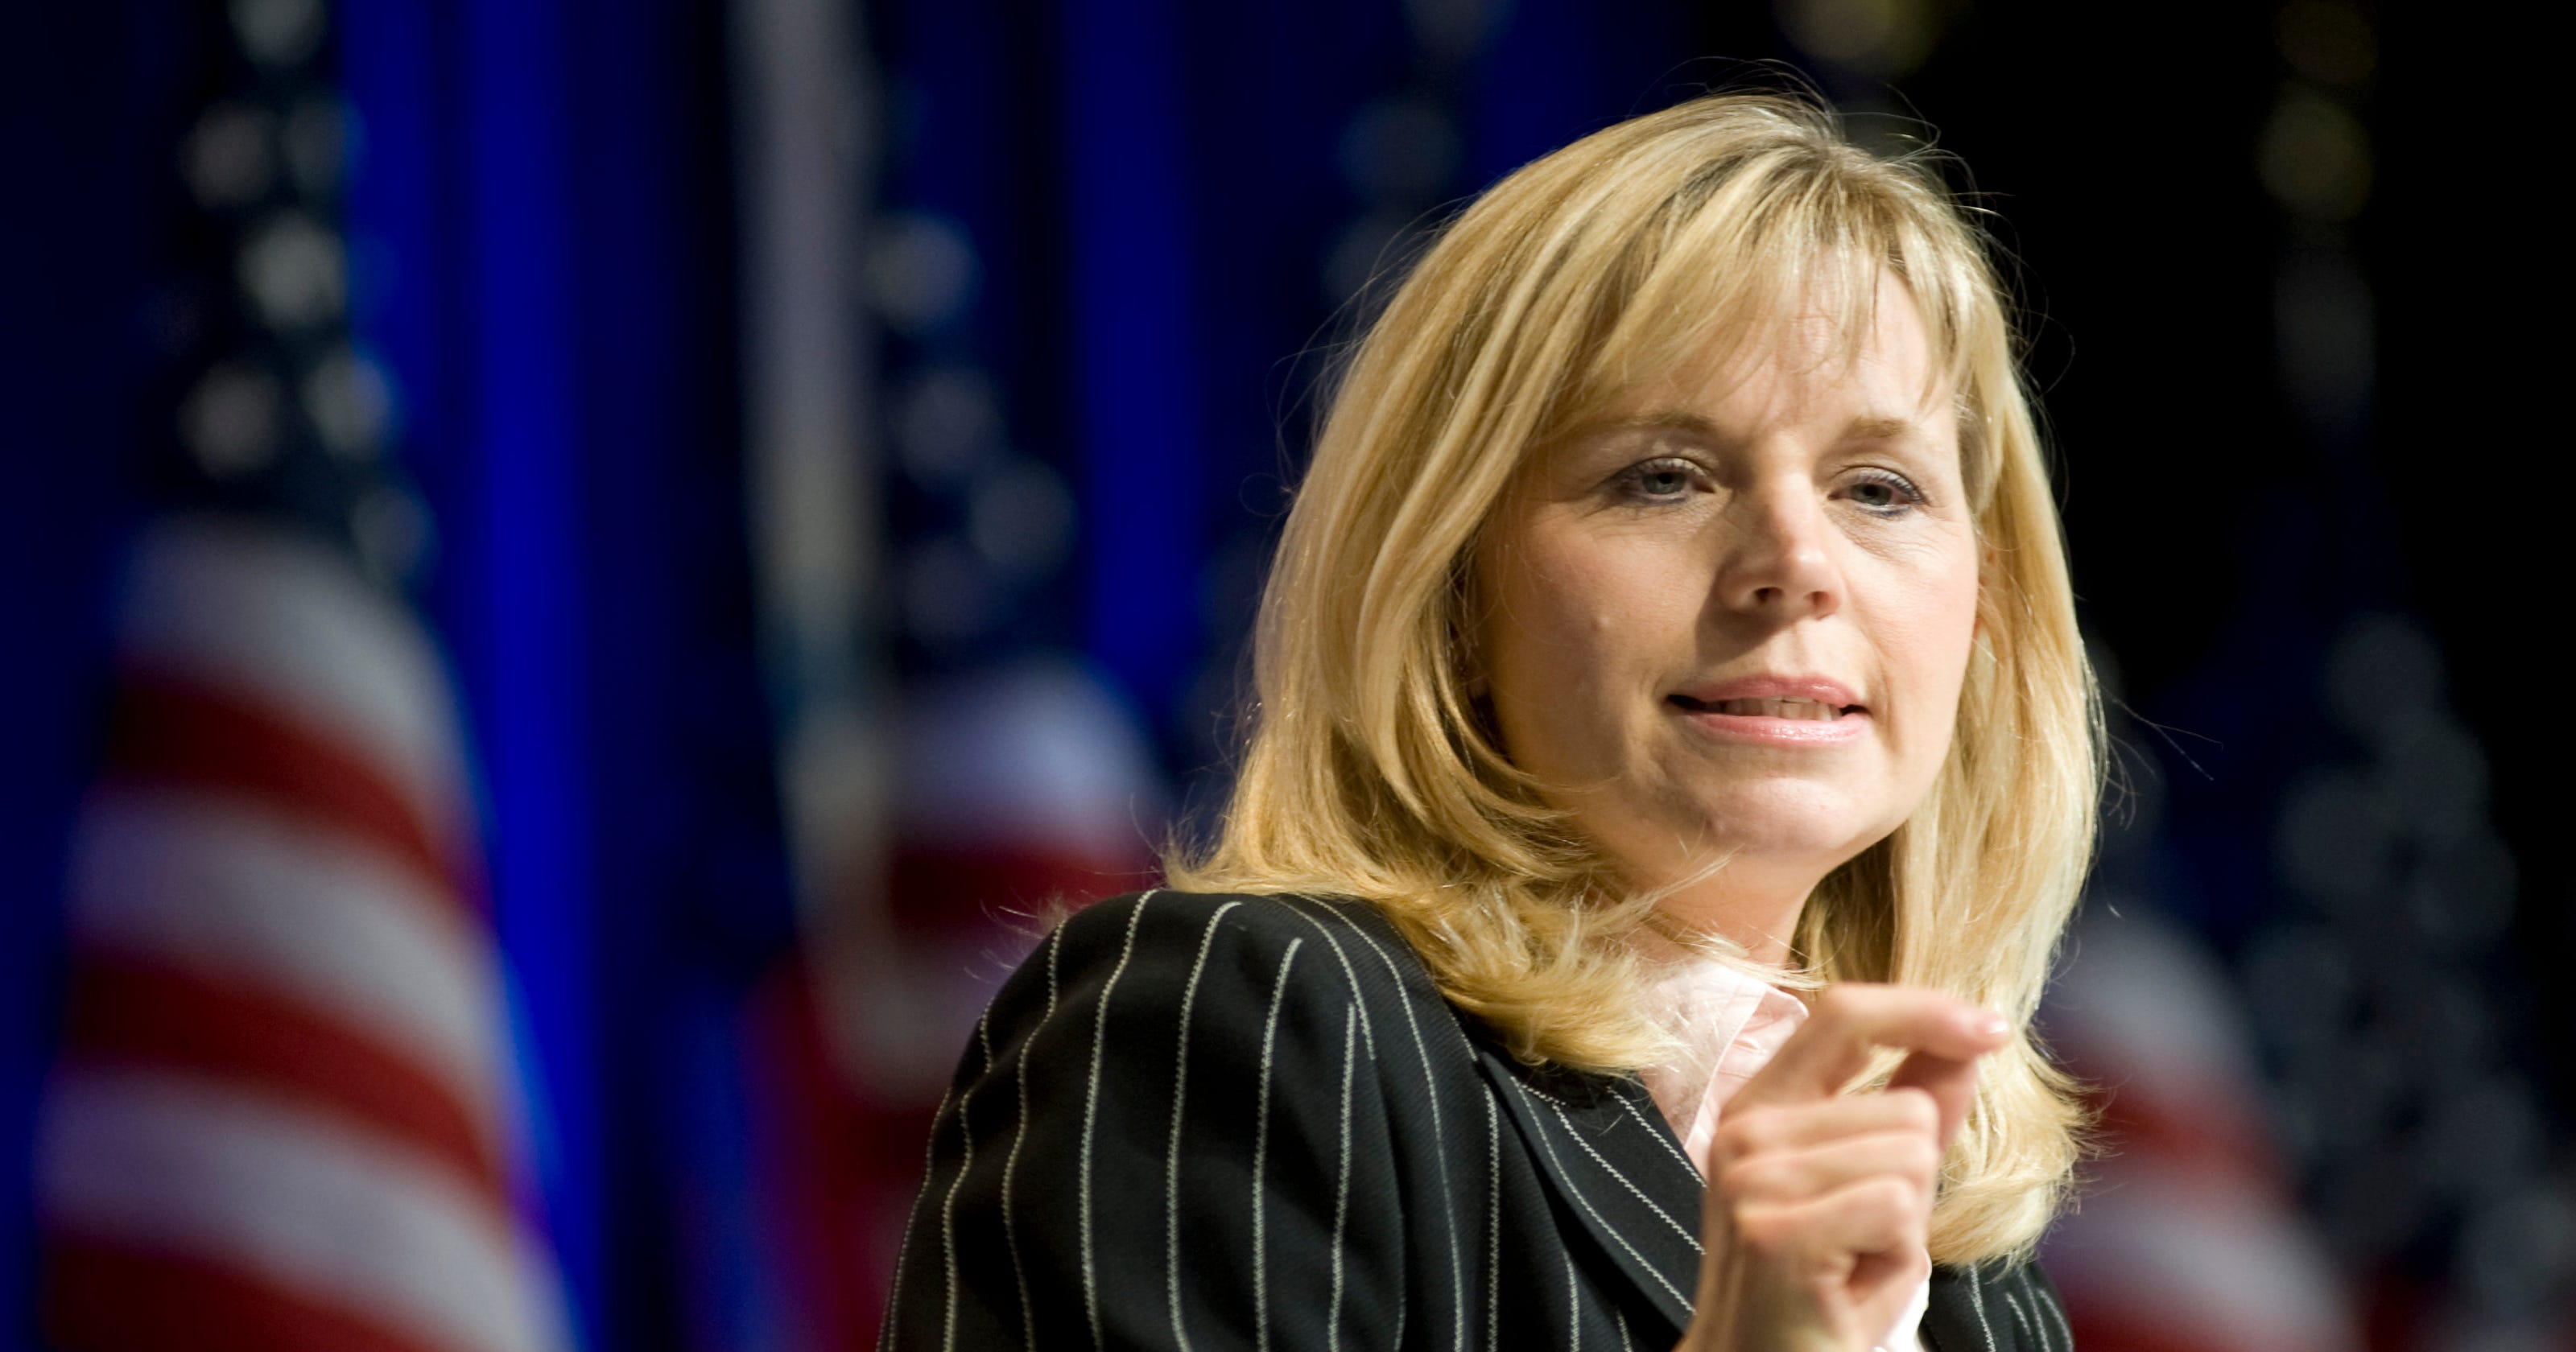 Dick Cheney's daughter jumps into Wyo. Senate race